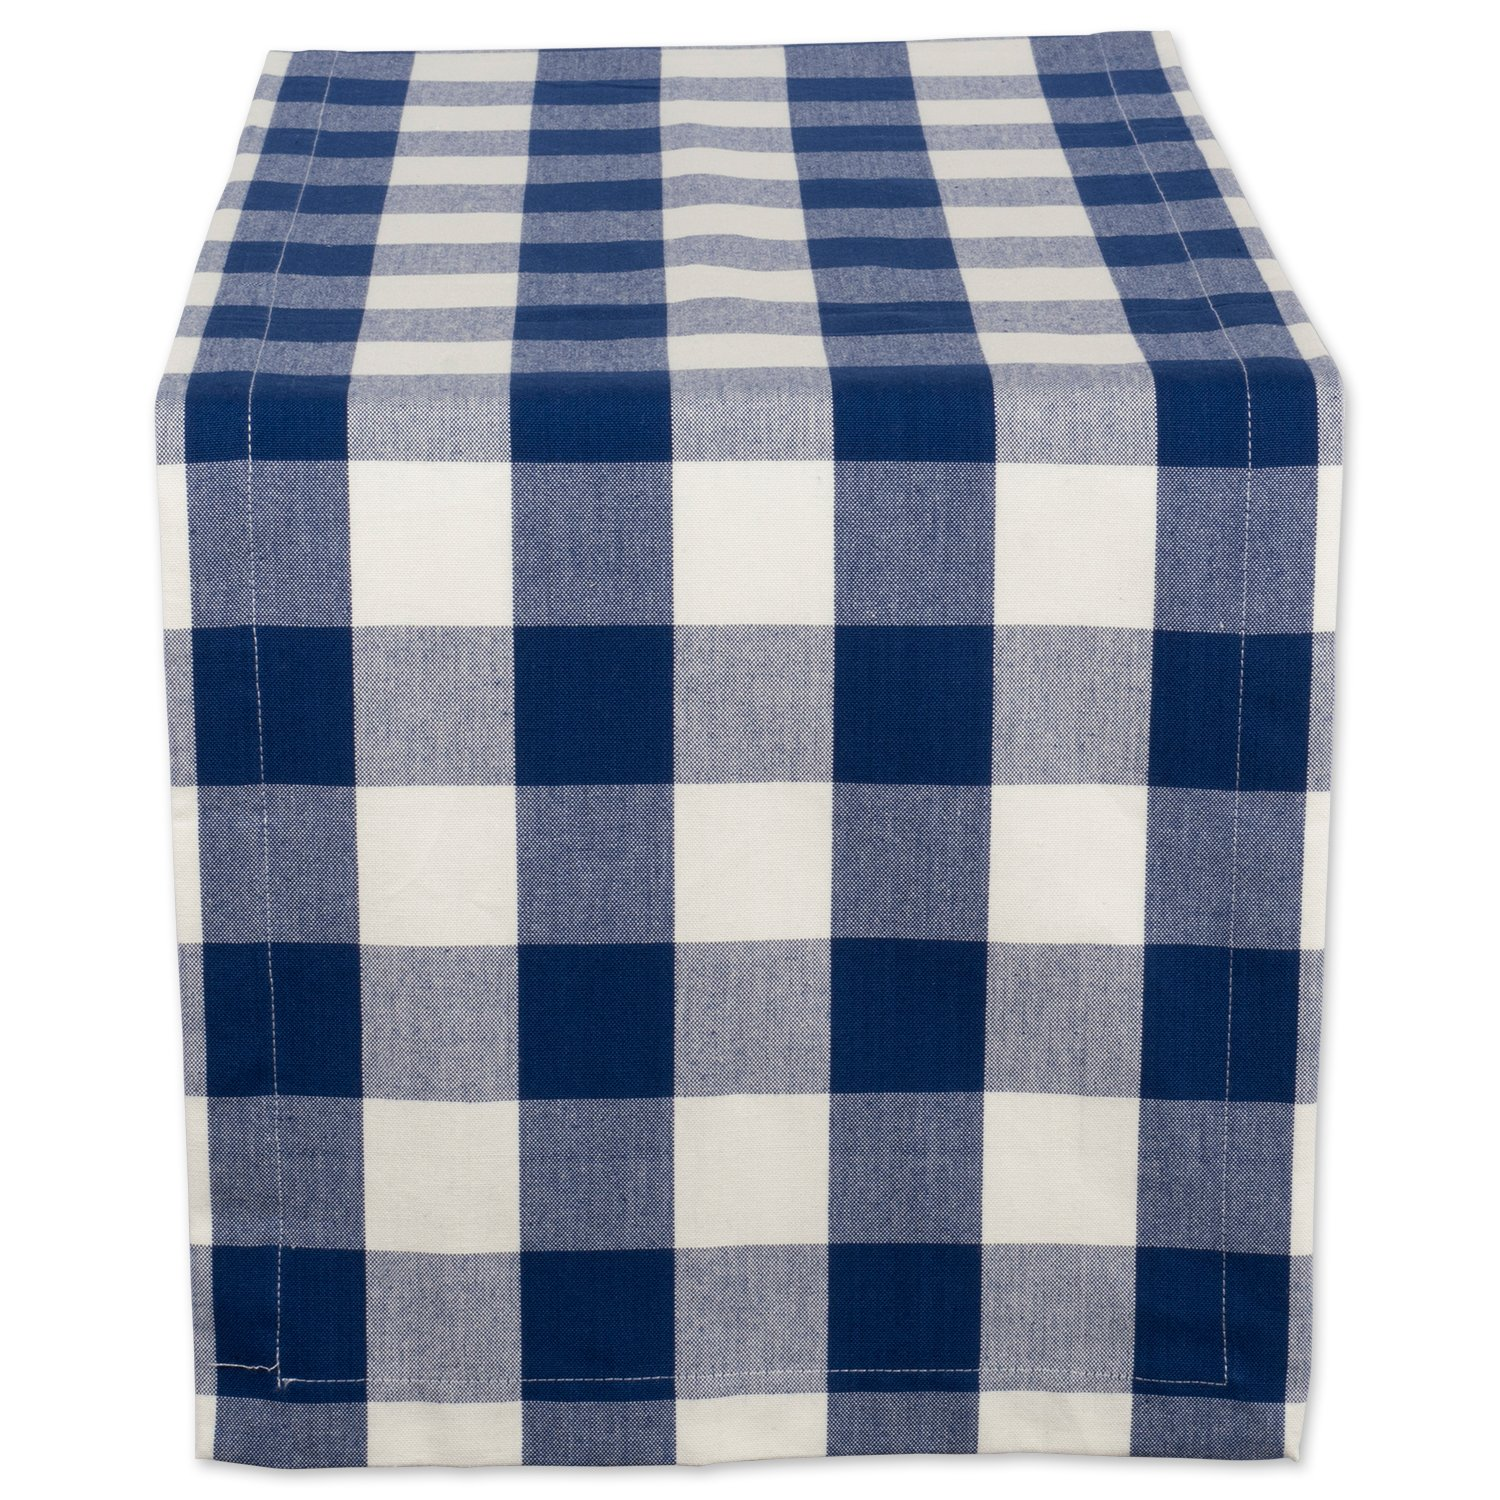 "DII Cotton Buffalo Check Table Runner for Family Dinners or Gatherings, Indoor or Outdoor Parties, & Everyday Use (14x72"",Seats 4-6 People), Navy & Cream"